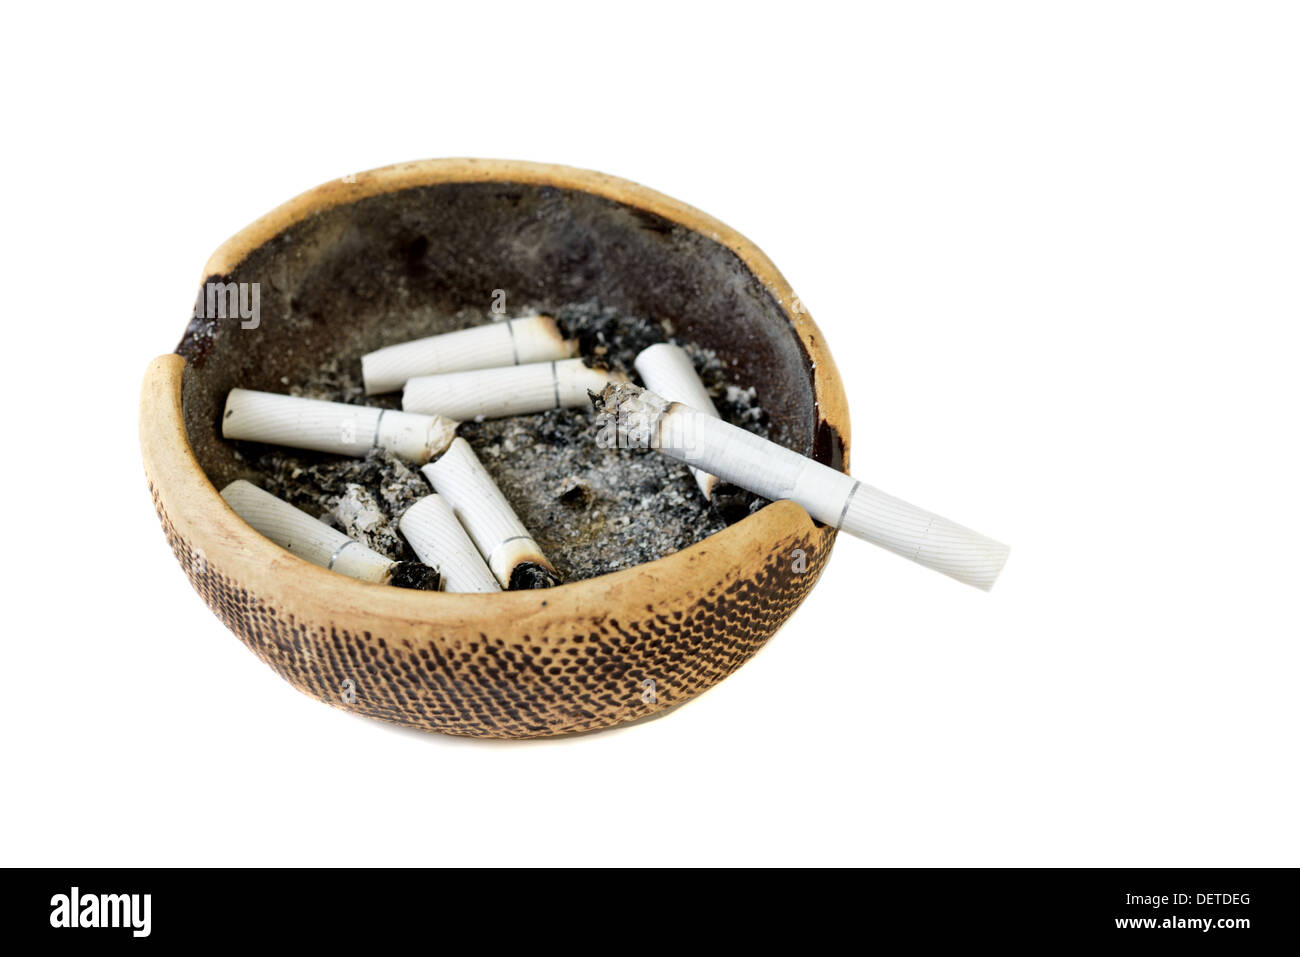 Dirty ashtray with cigarette ash and butts Stock Photo